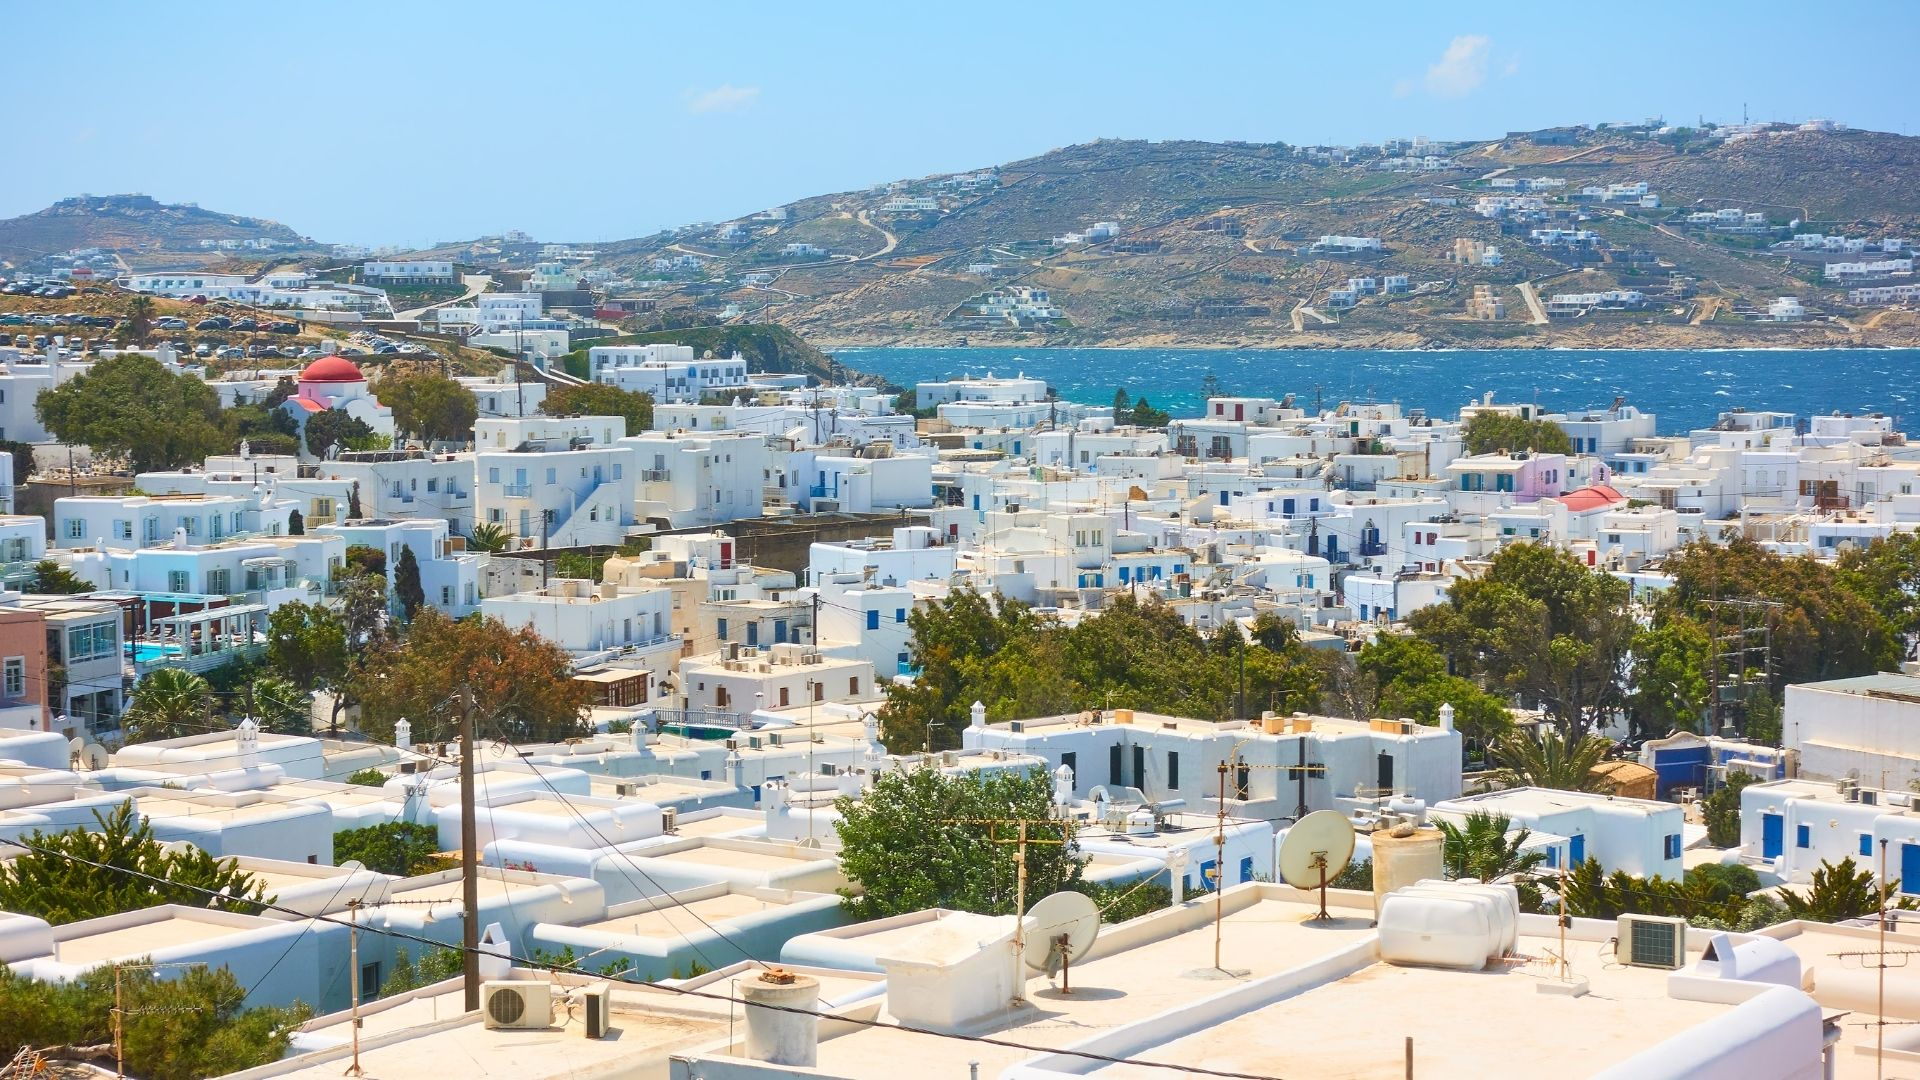 The capital of Mykonos, Chora